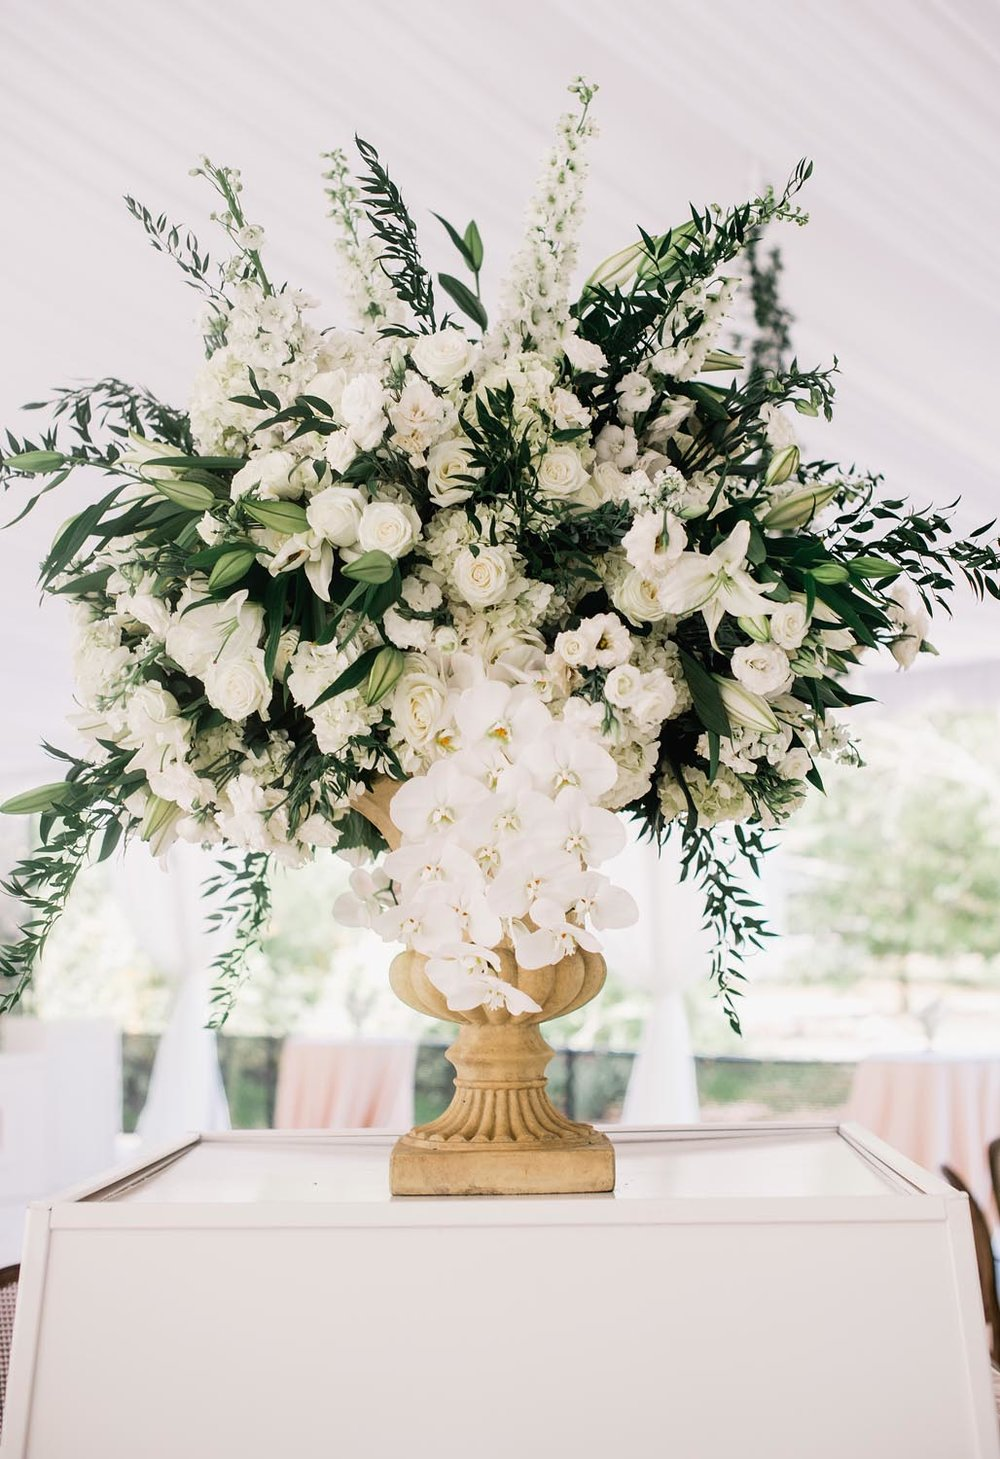 Looking for wedding venues in Charleston SC? A Charleston Bride is one of the top wedding planners in the world and creates classicly sophisticated events